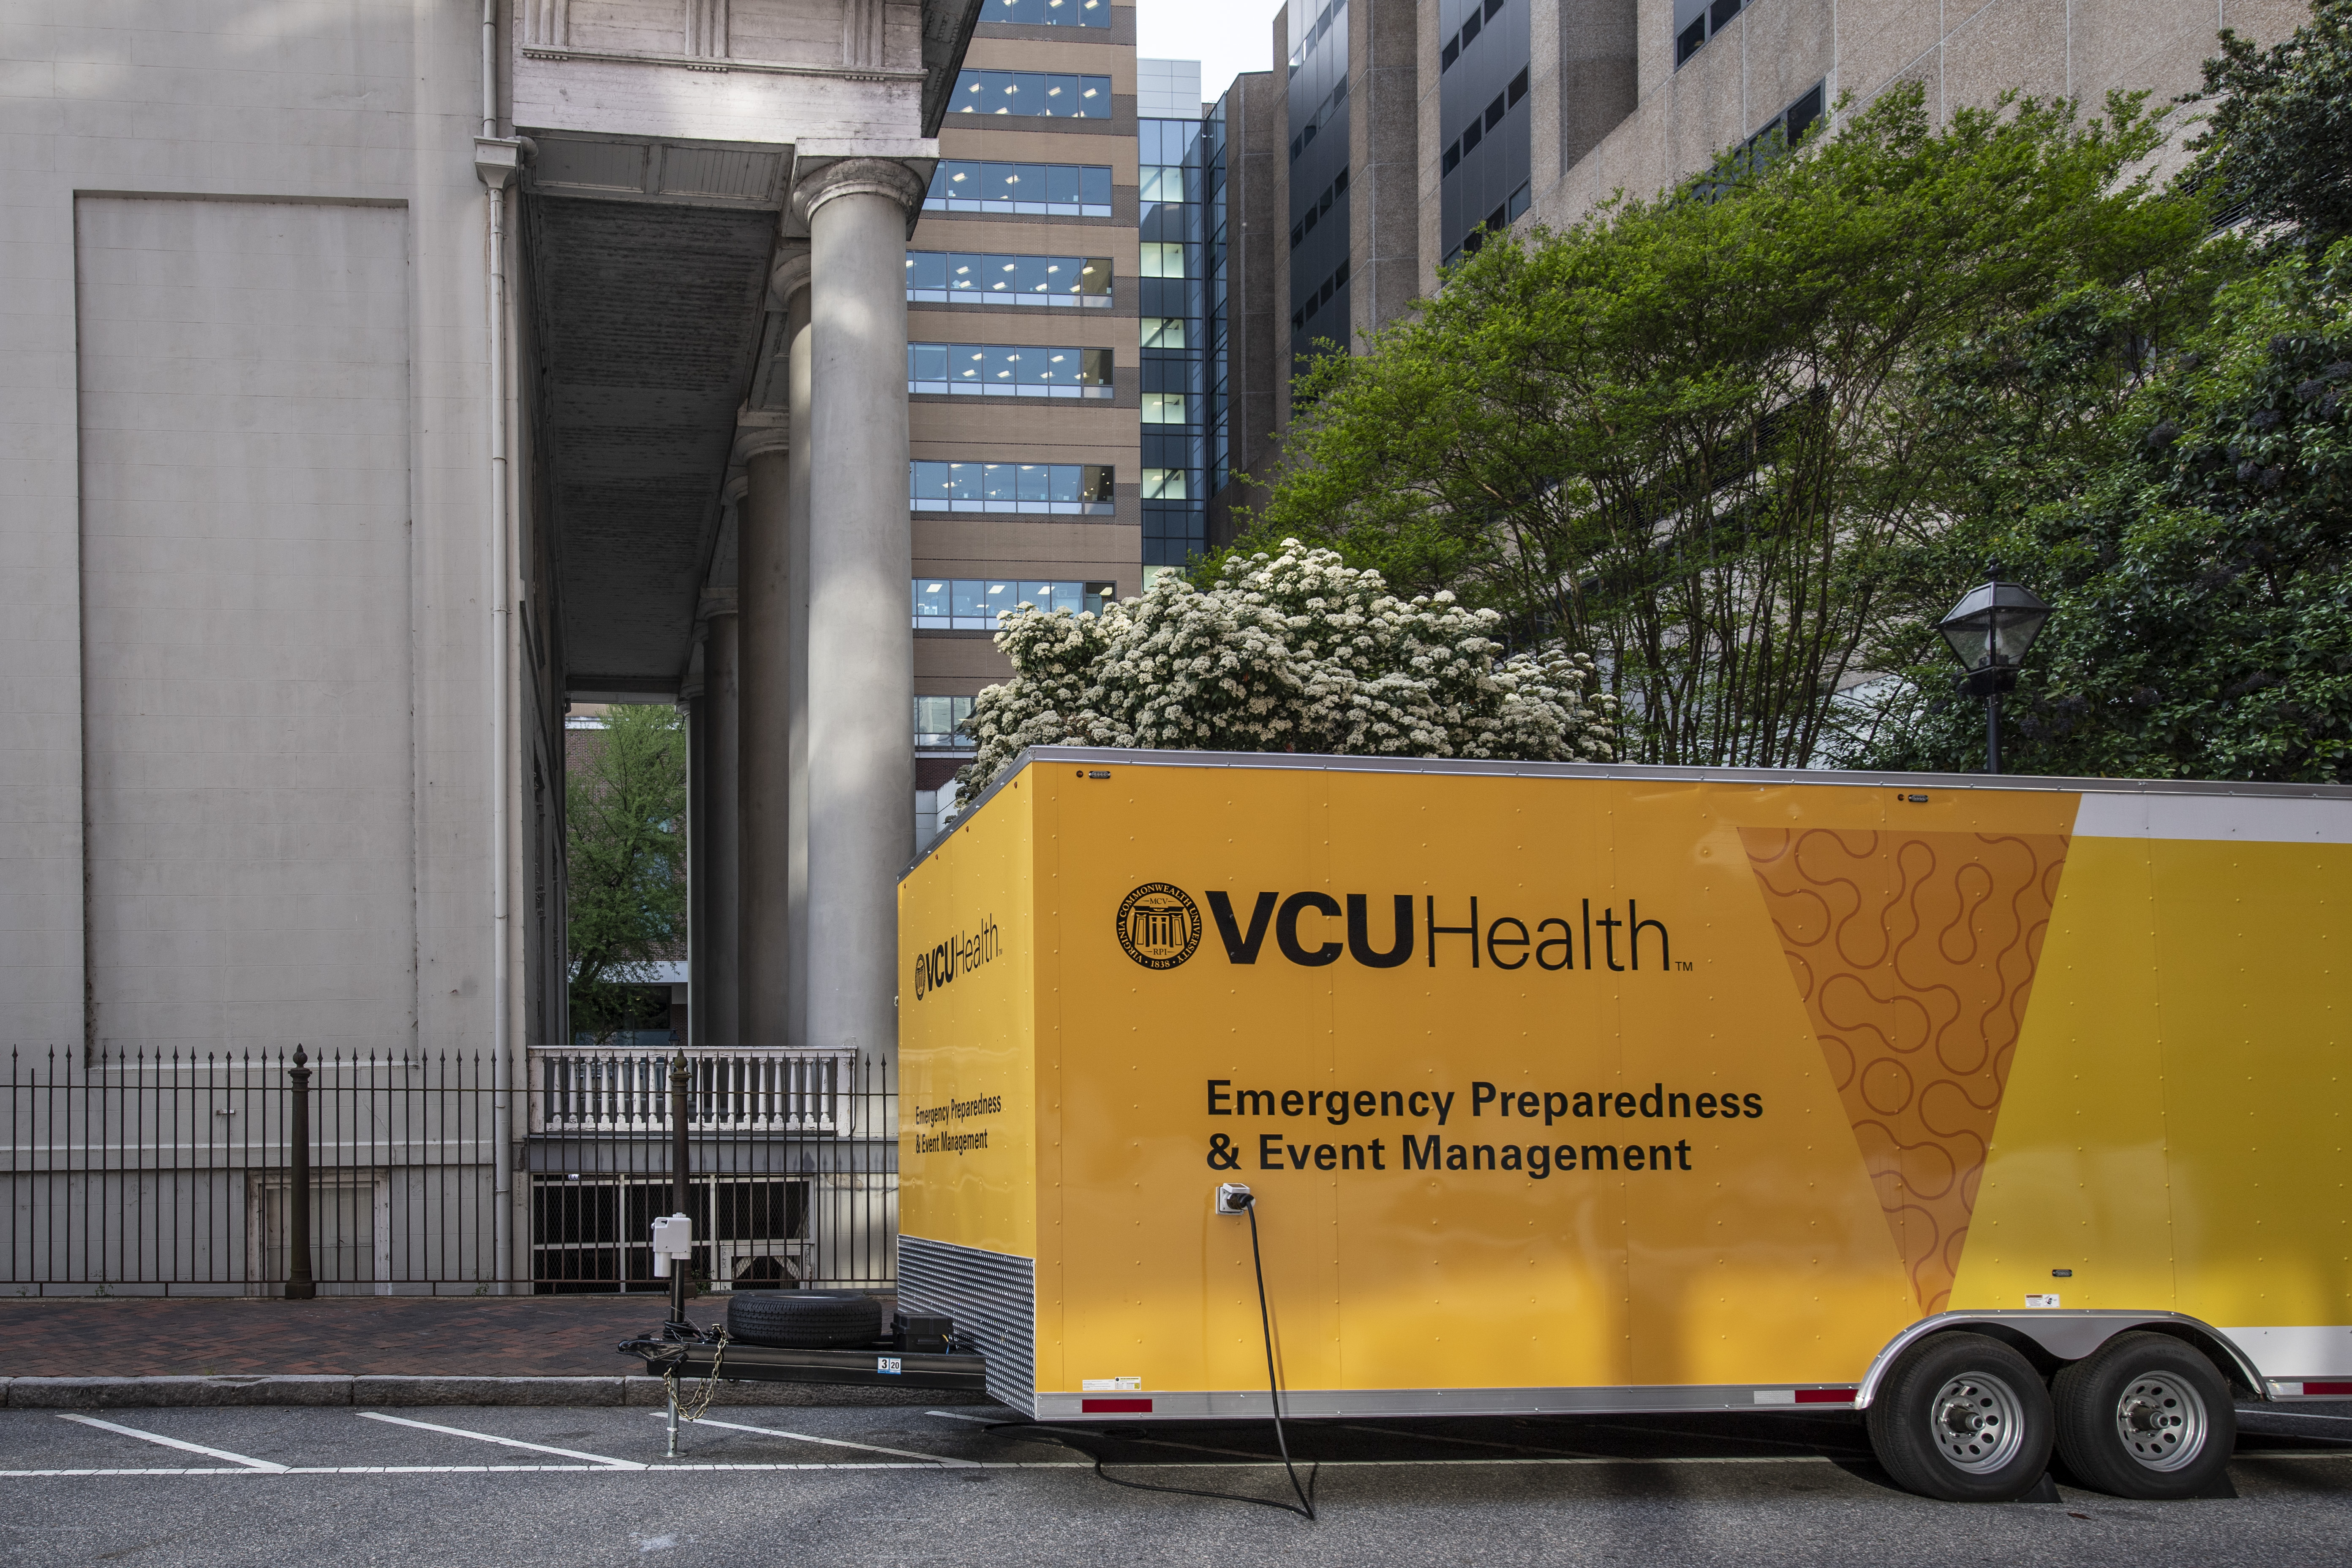 VCU Emergency Preparedness